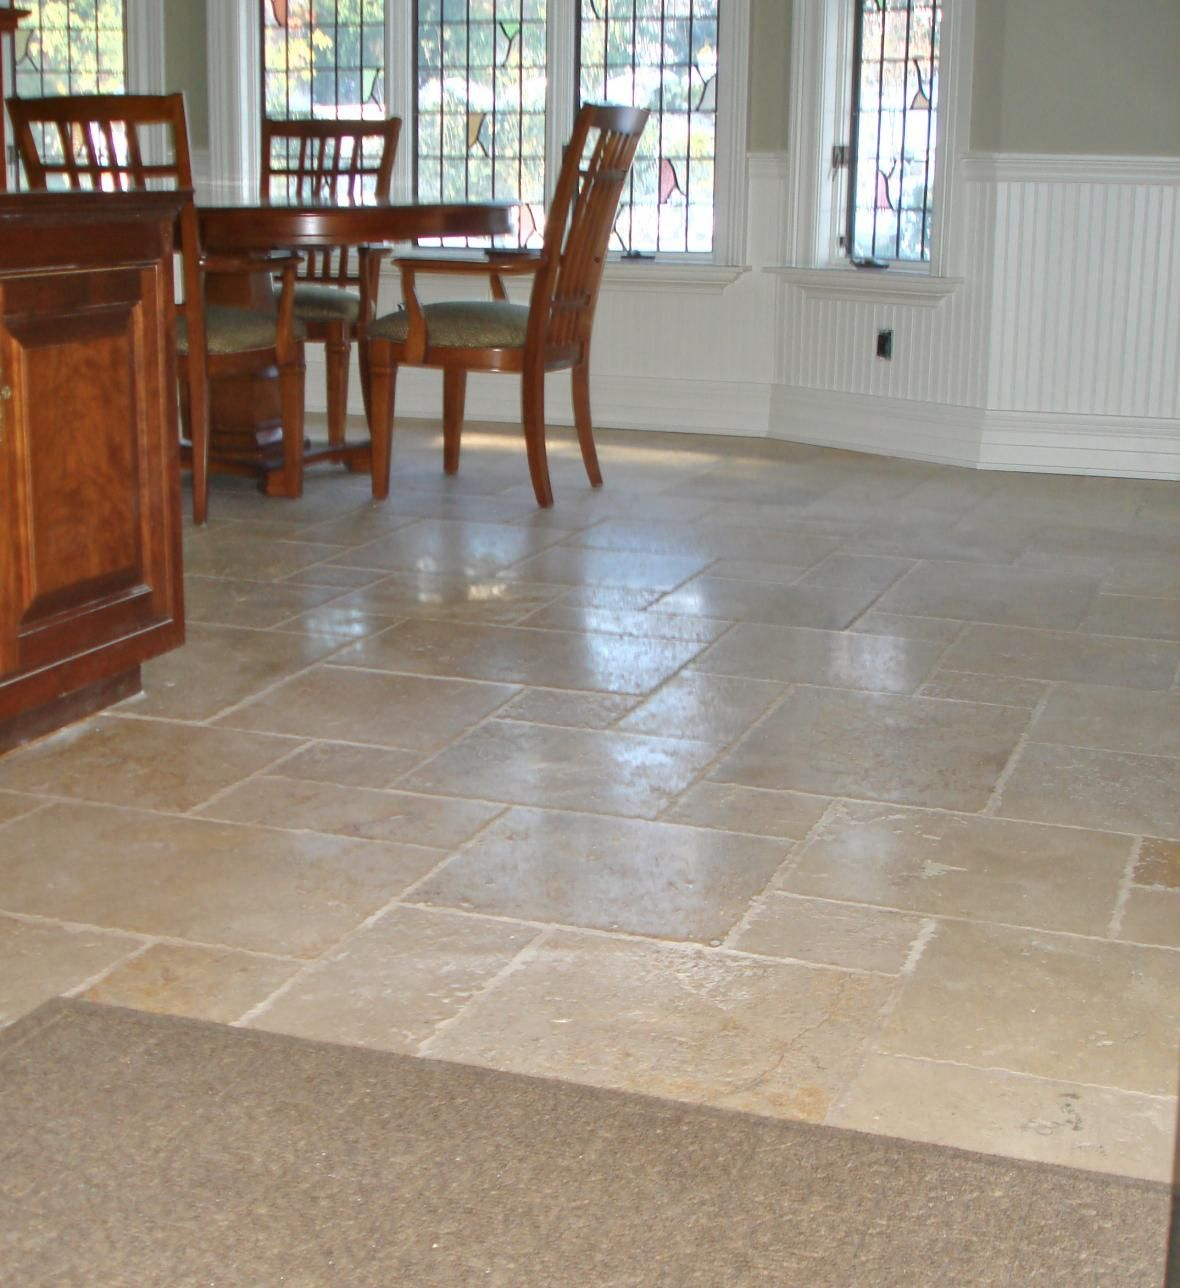 Floor tiles for kitchens more about tumbled marble kitchen types of kitchen tile flooring tumbled marble kitchen tile floor dailygadgetfo Choice Image